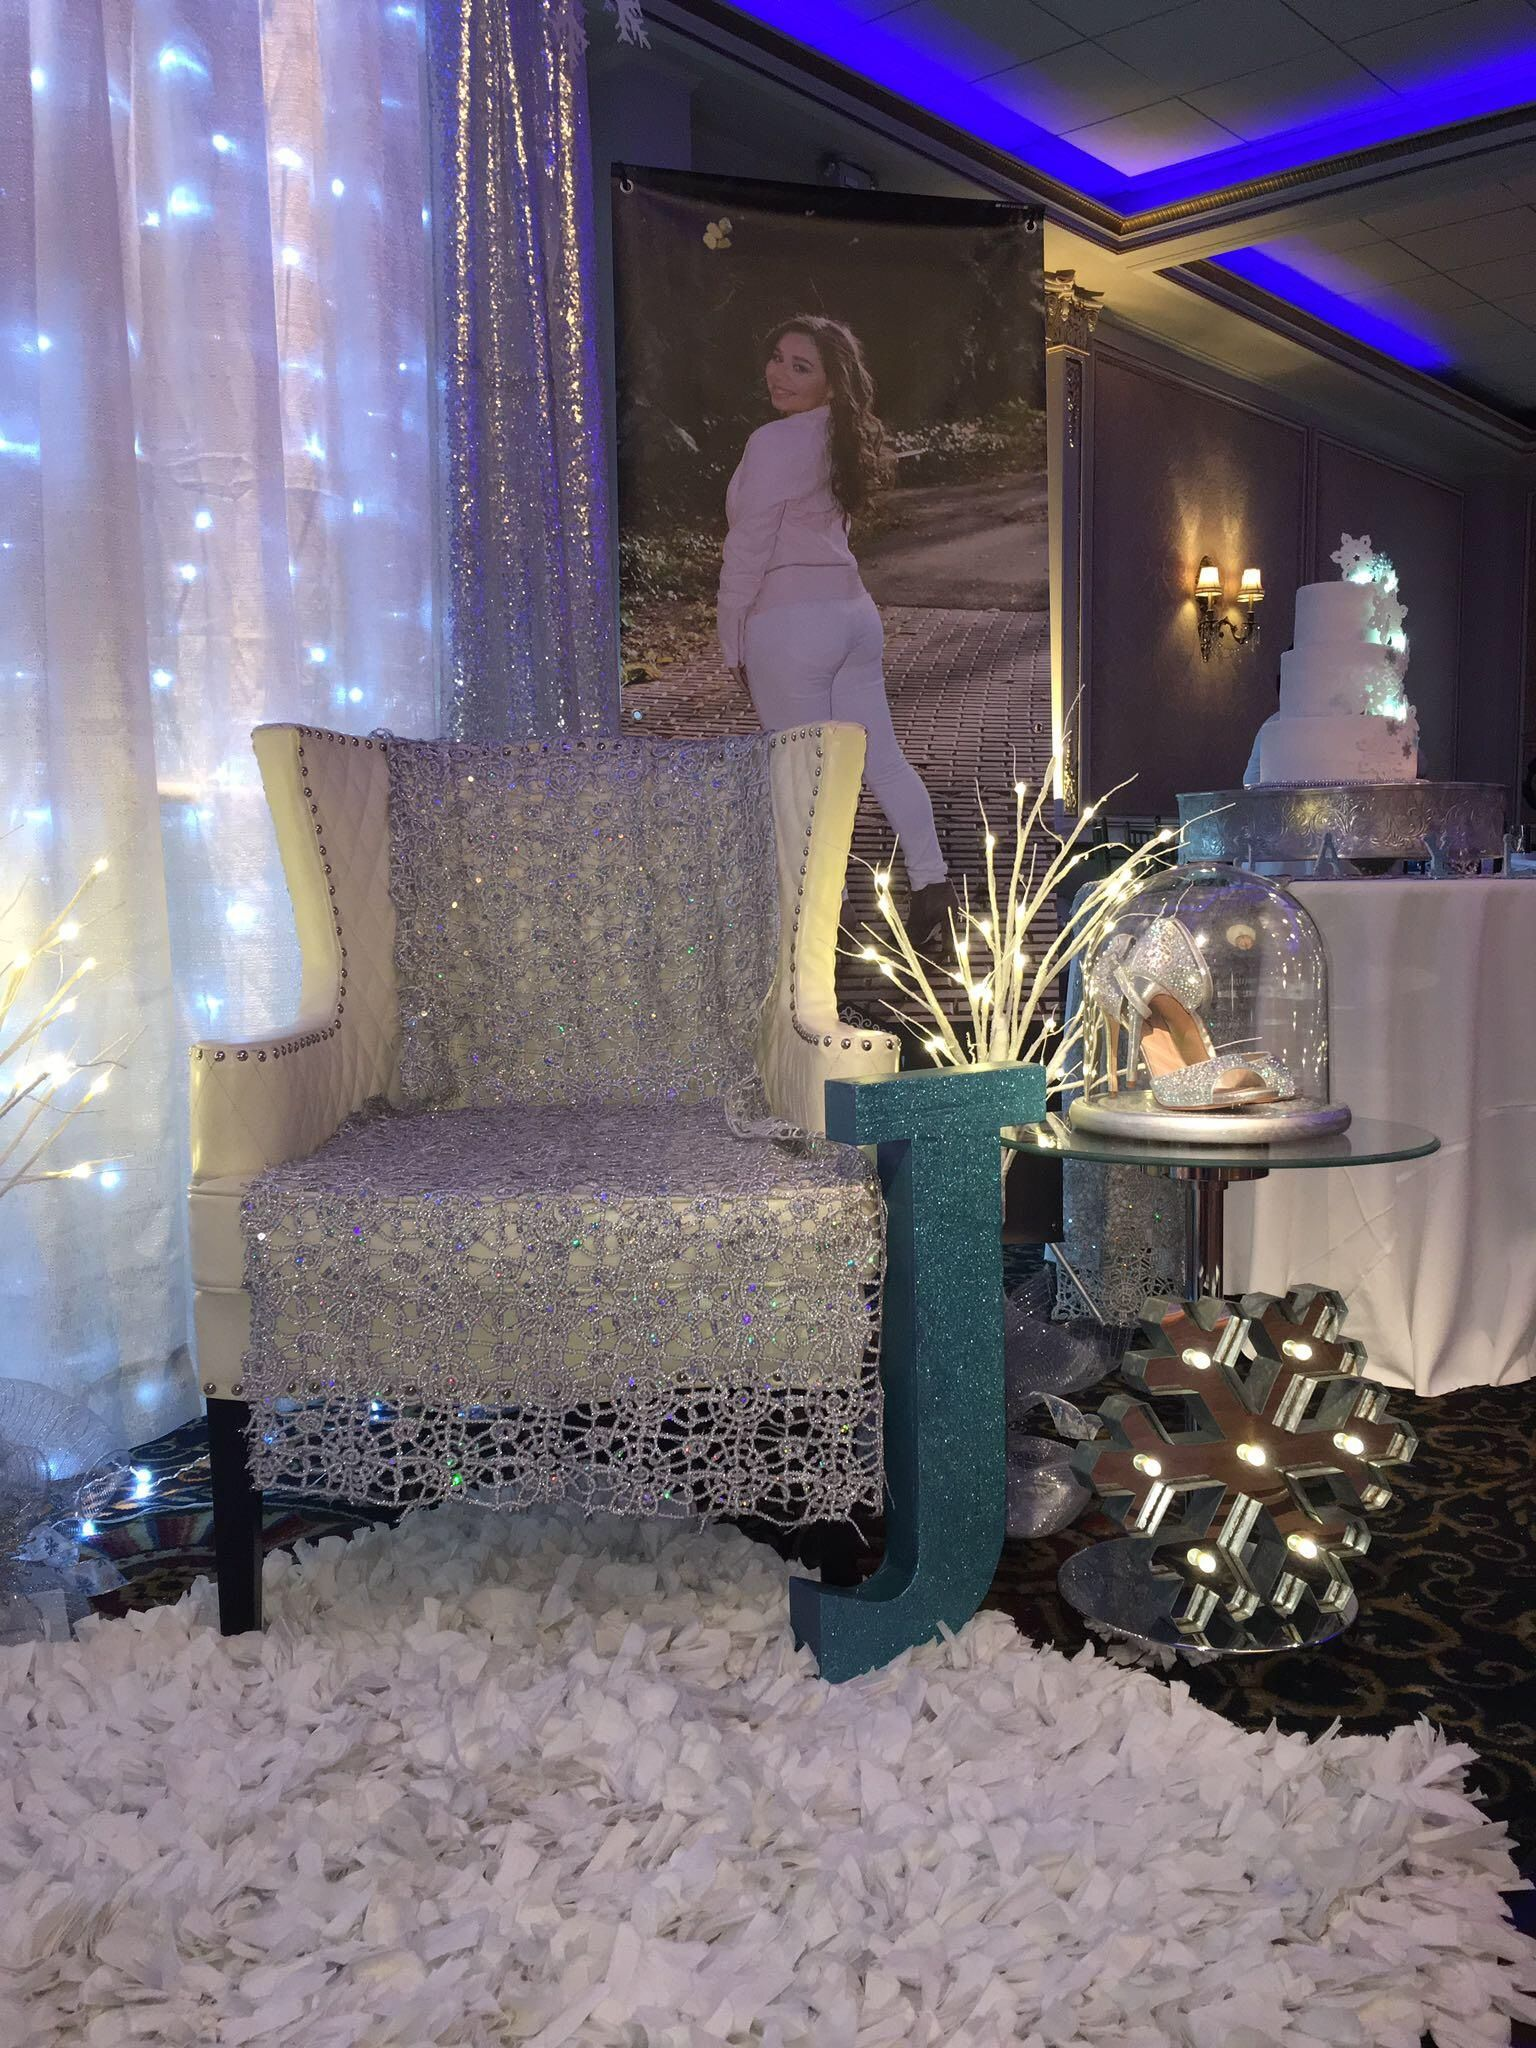 change of shoes ceremony - winter wonderland sweet 16 | sweet 16